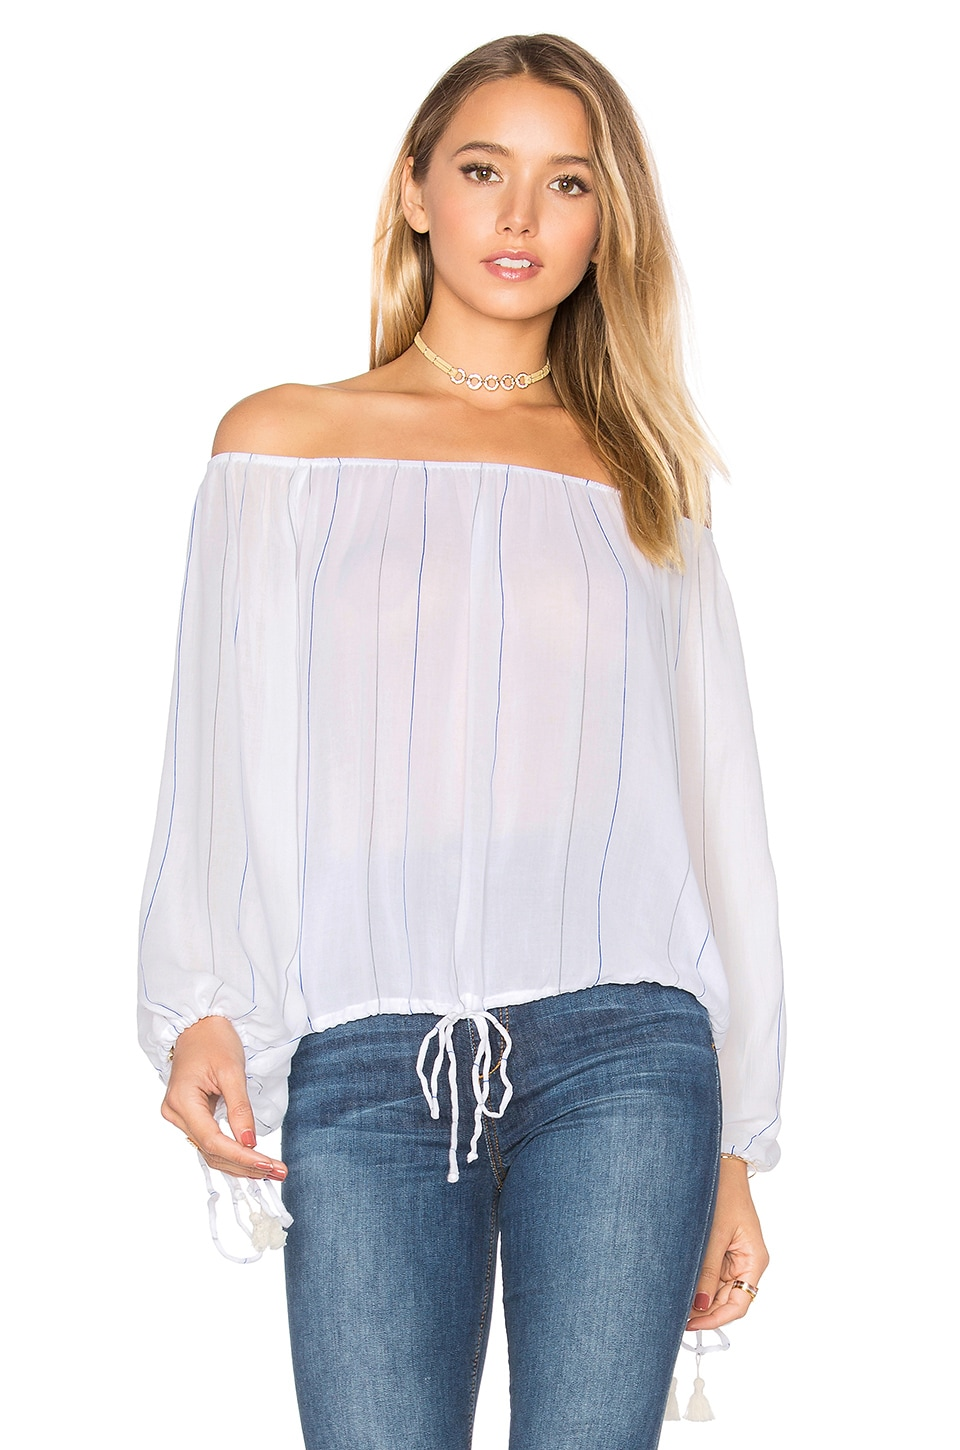 Cult Top by FAITHFULL THE BRAND